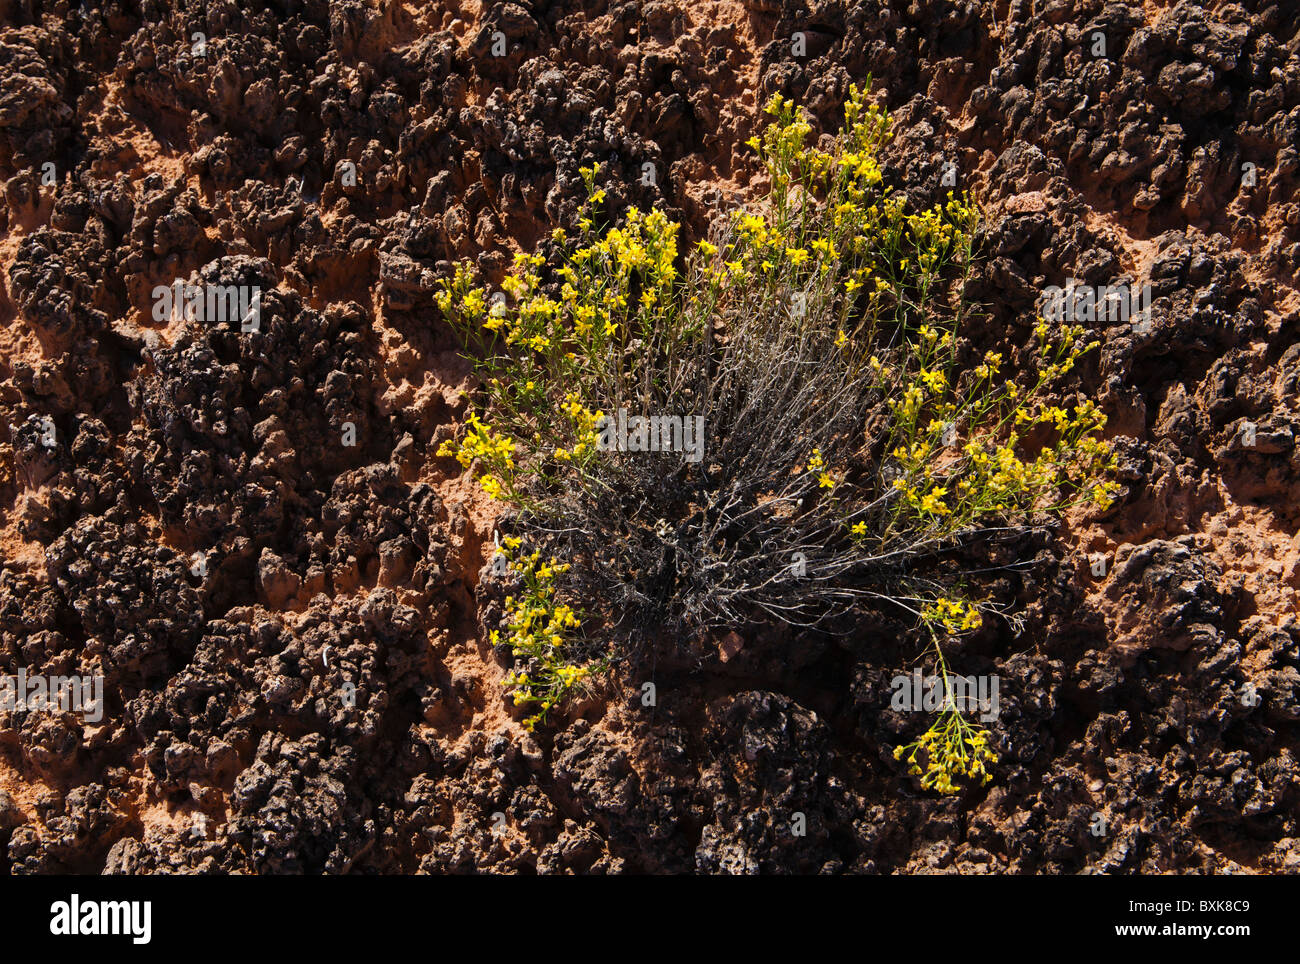 Closeup of cryptobiotic soil and Rabbitbrush in Canyonlands National Park, Needles District, Utah, USA. - Stock Image